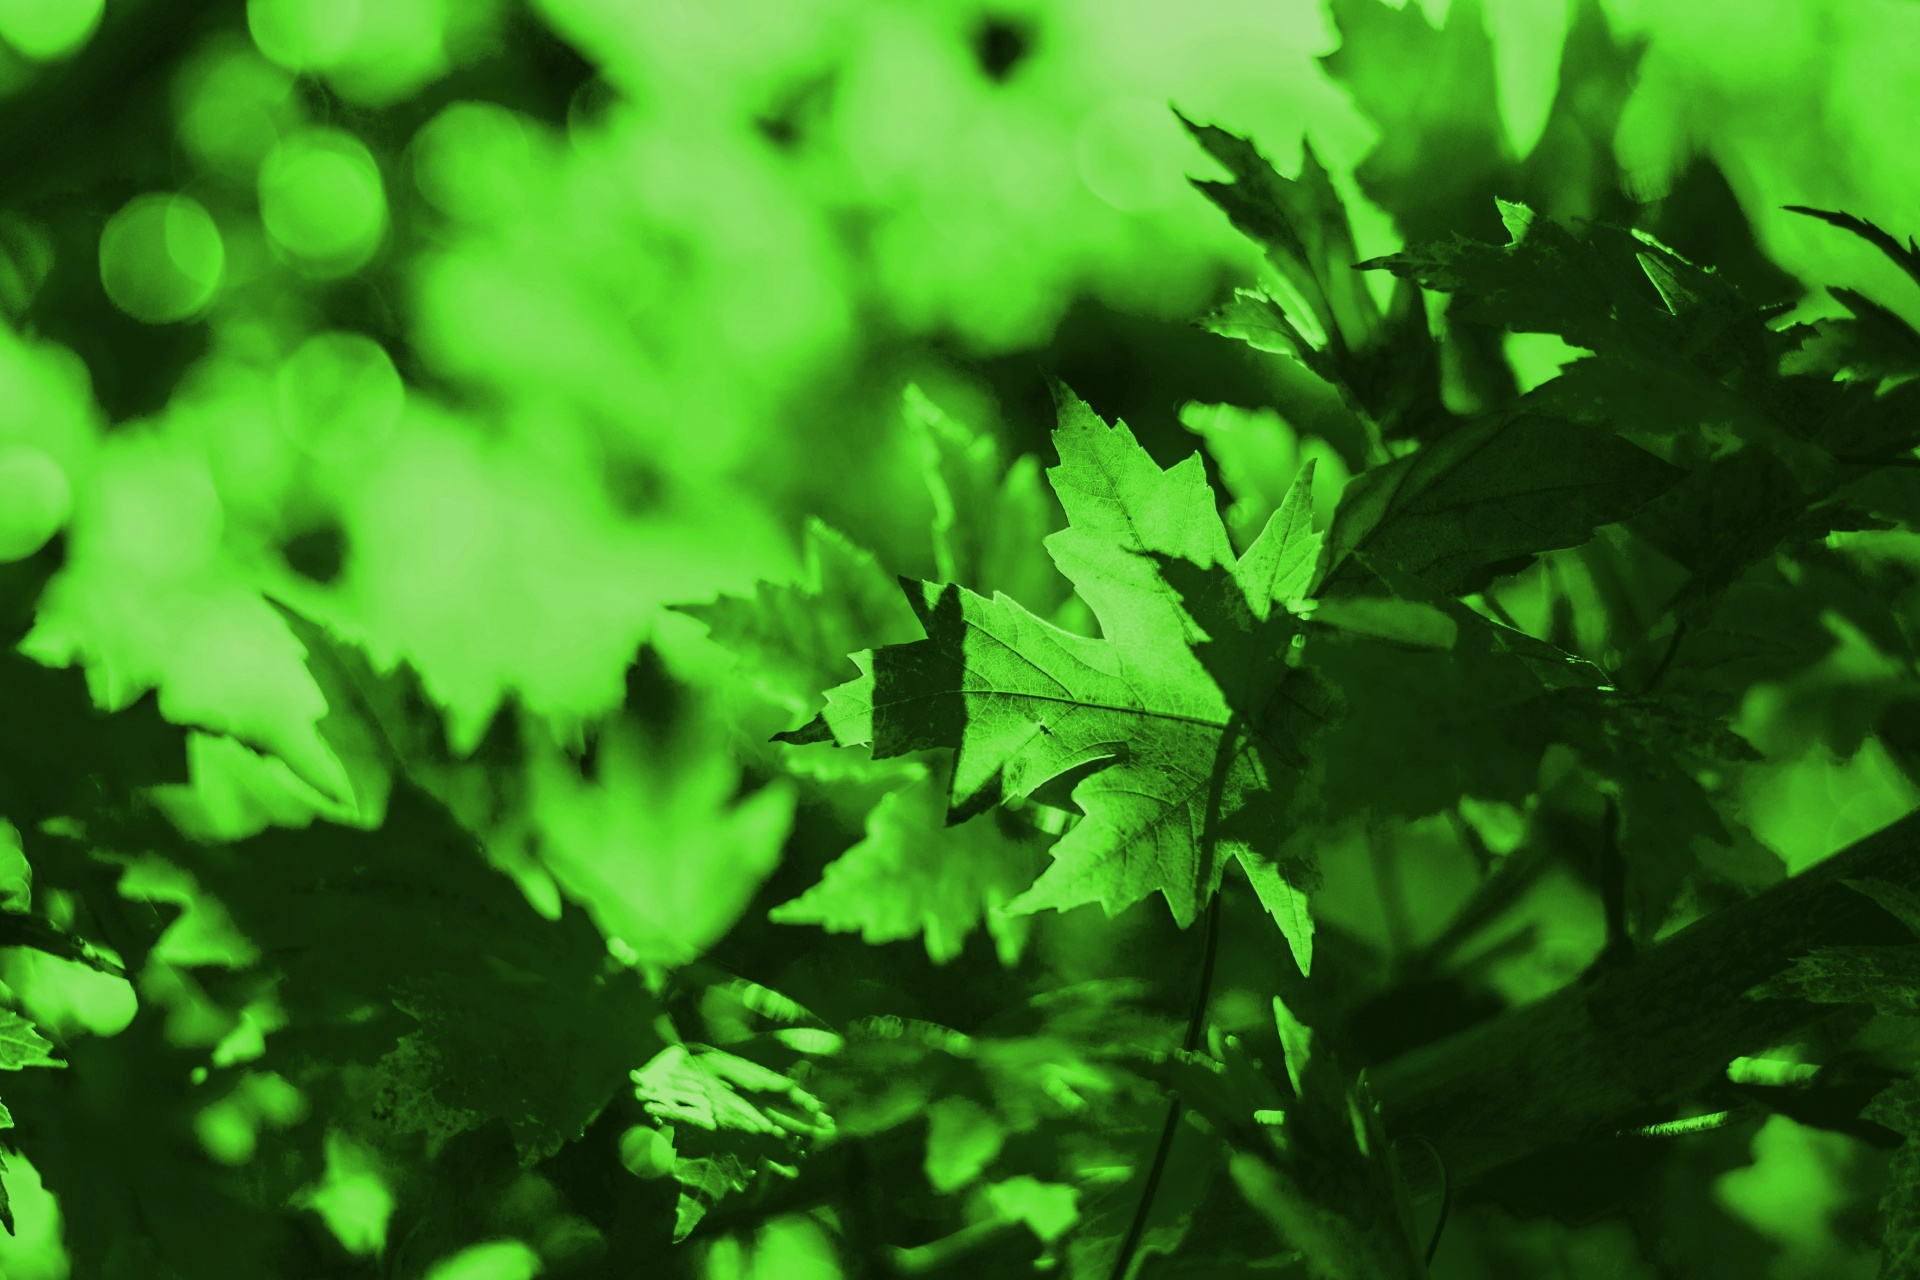 Green Leaves Background Free Stock Photo - Public Domain Pictures